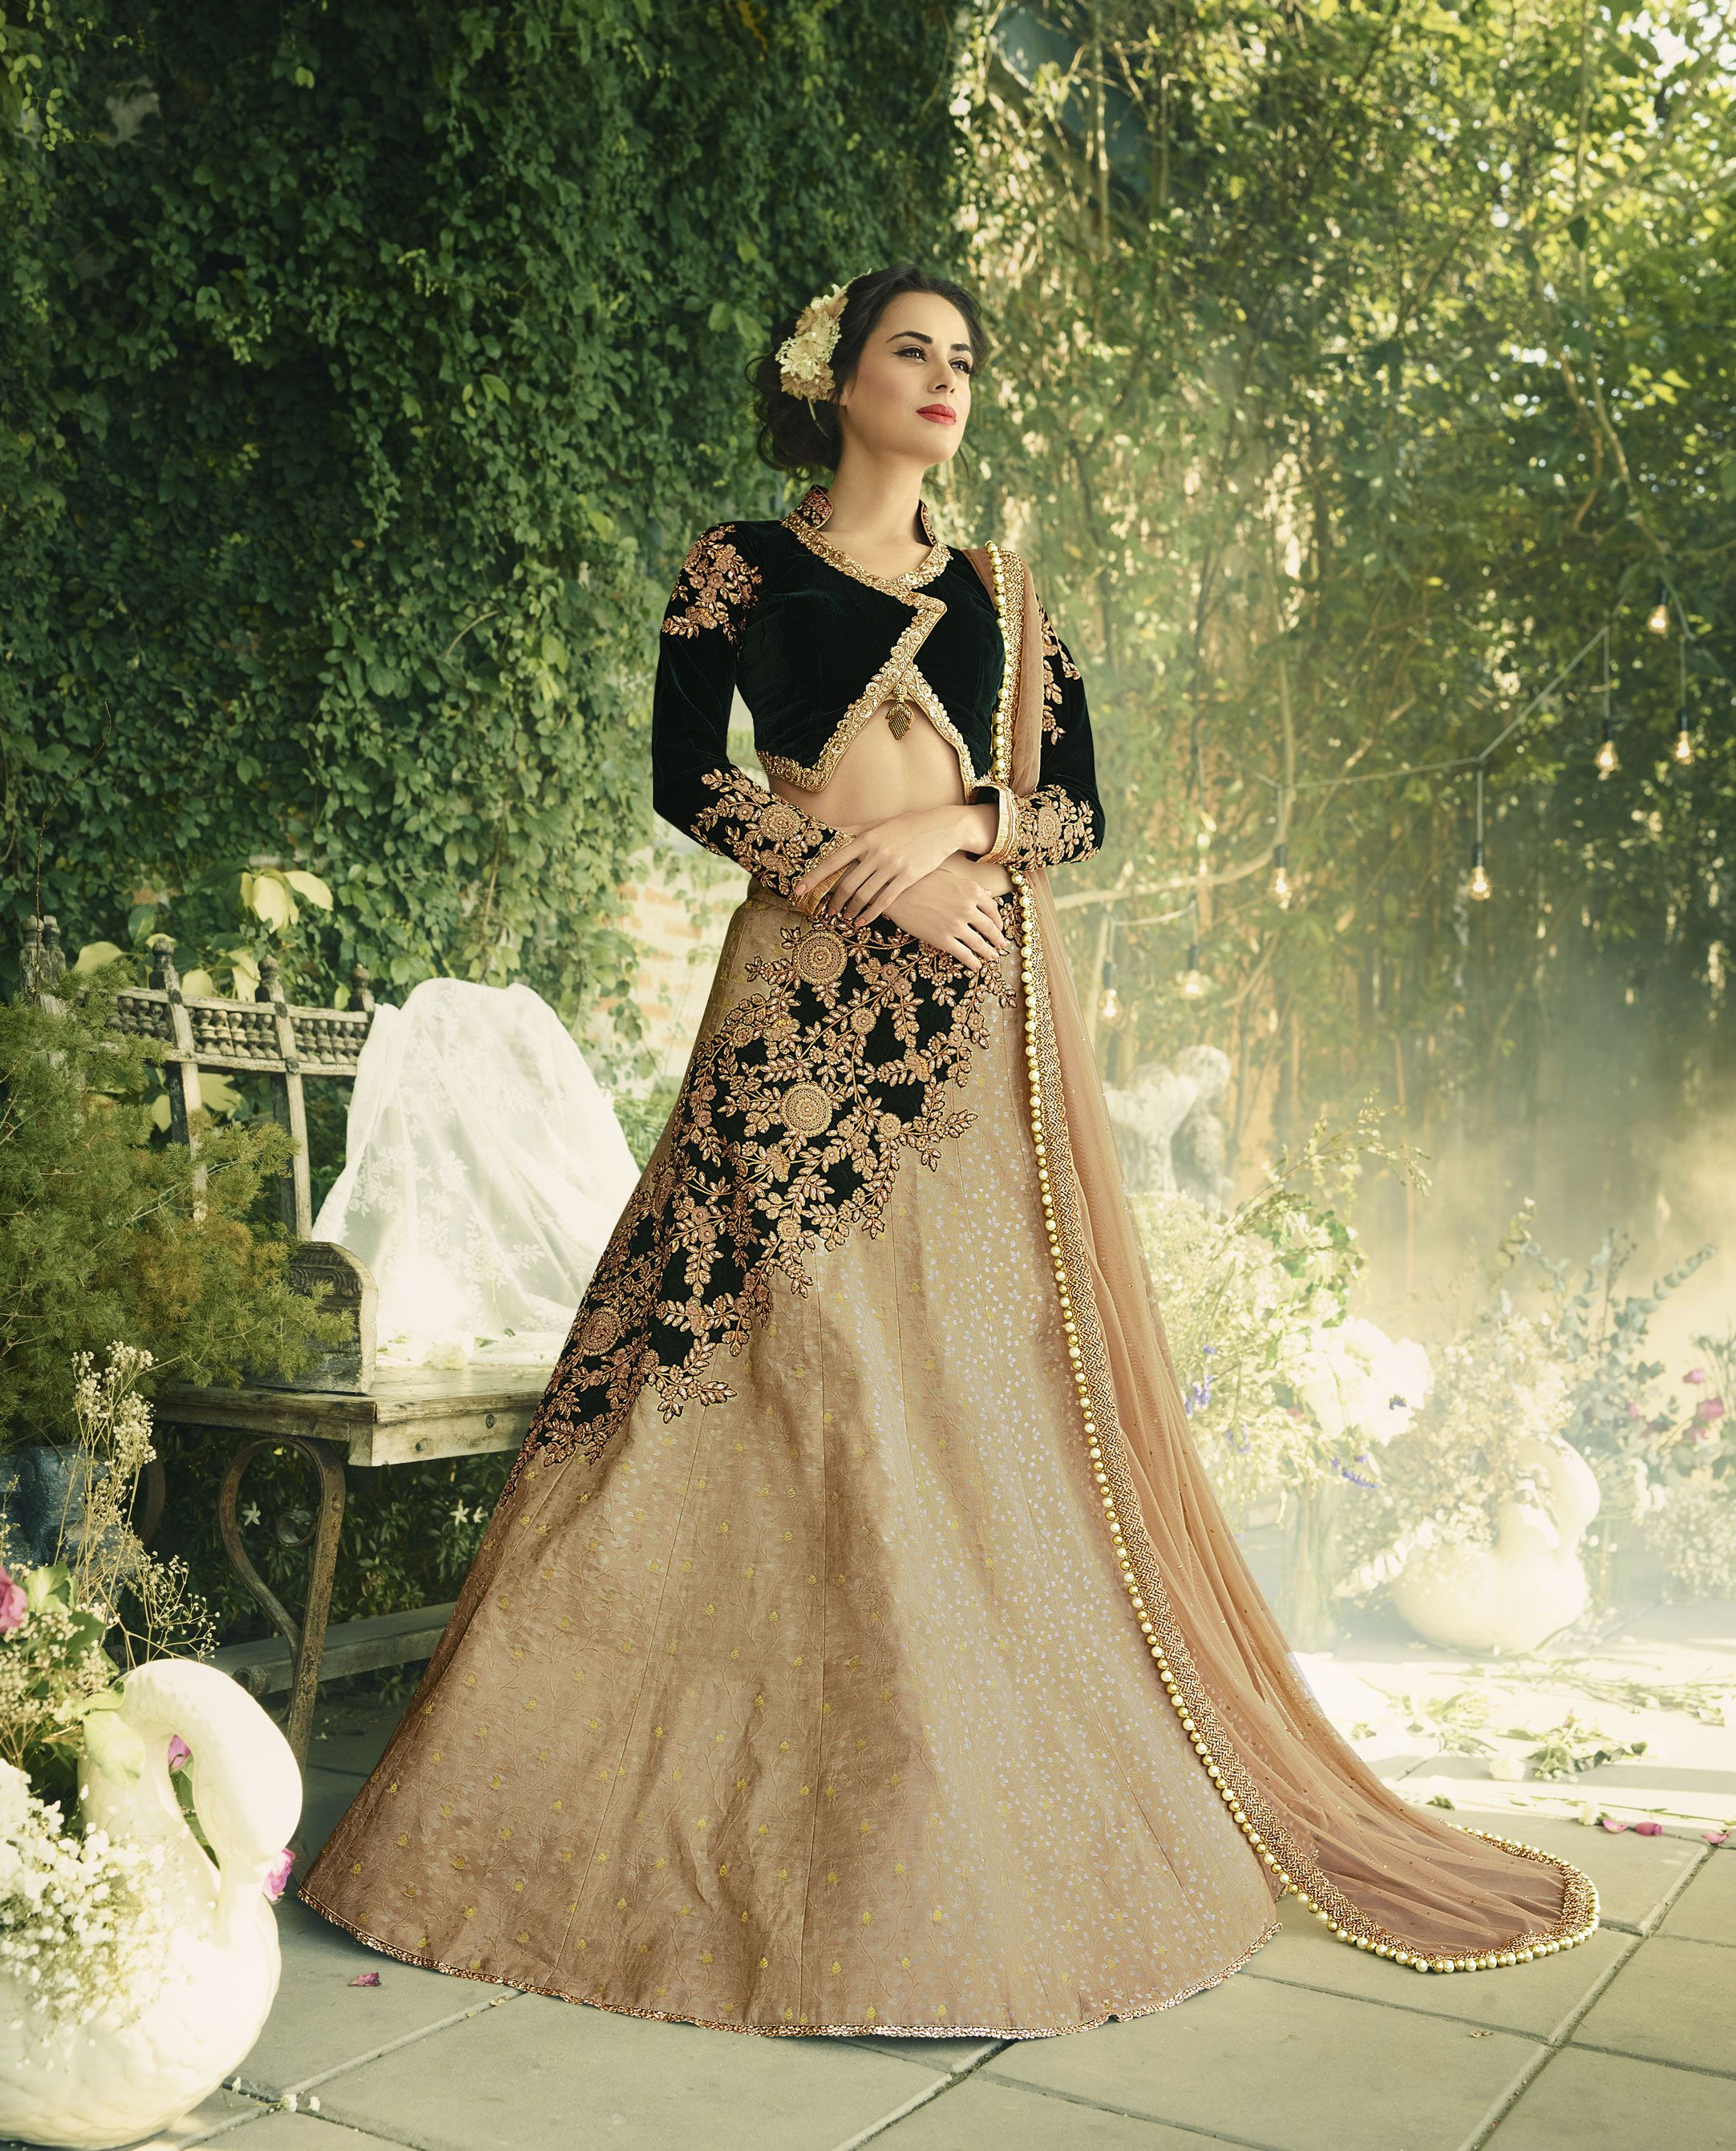 ca46f5c552 Awesome Green And Beige Color Trendy Lehenga Choli True attractiveness  comes out through the dressing style with this green art silk lehenga choli.